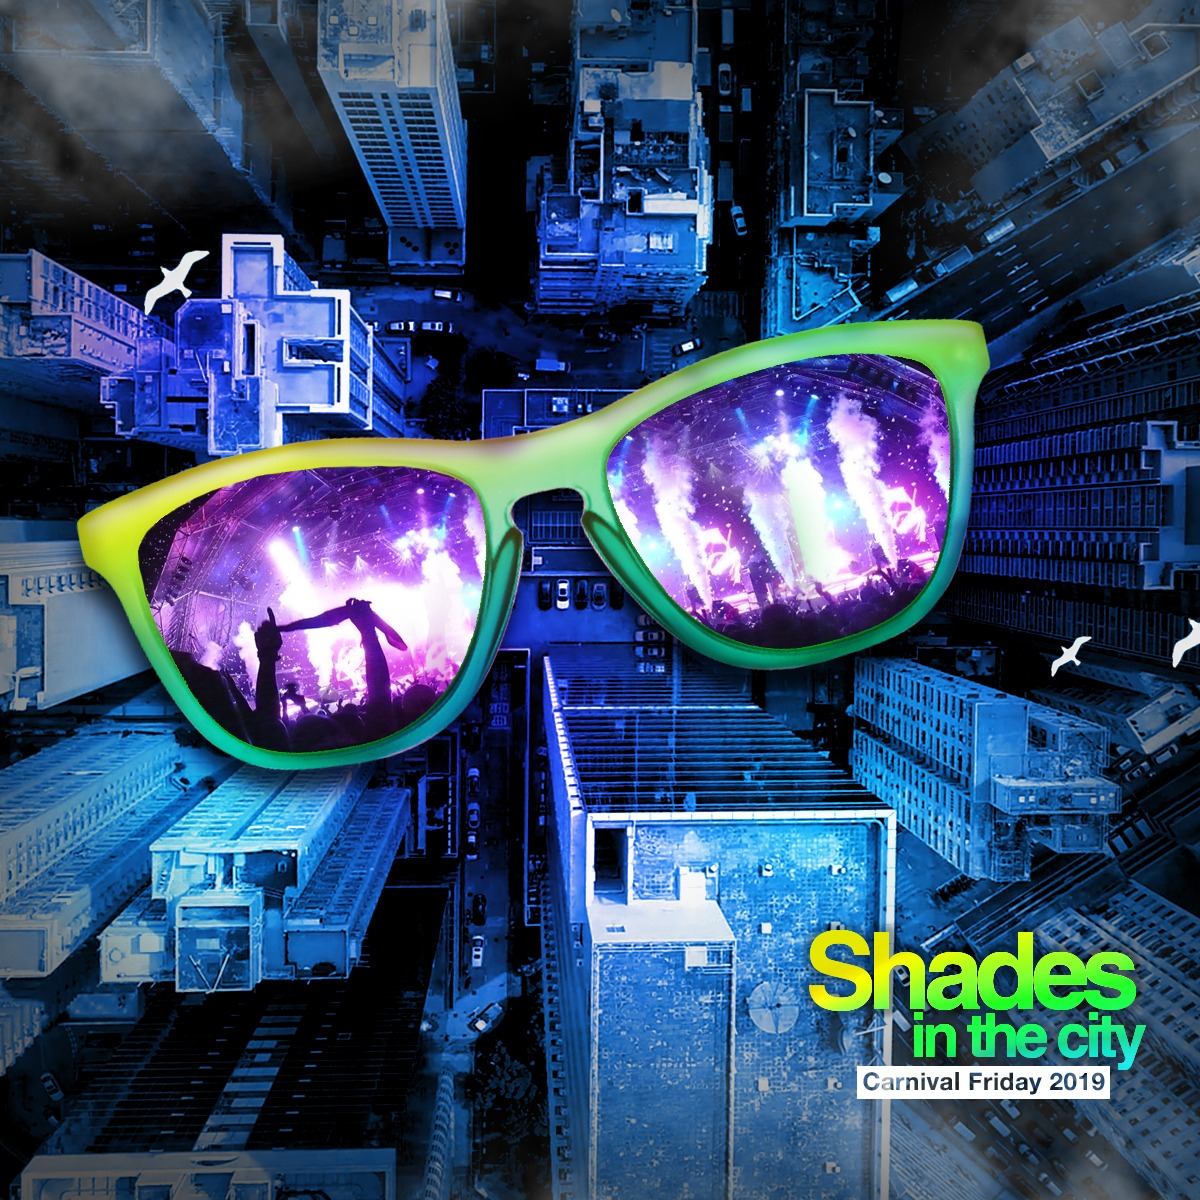 SHADES IN D CITY